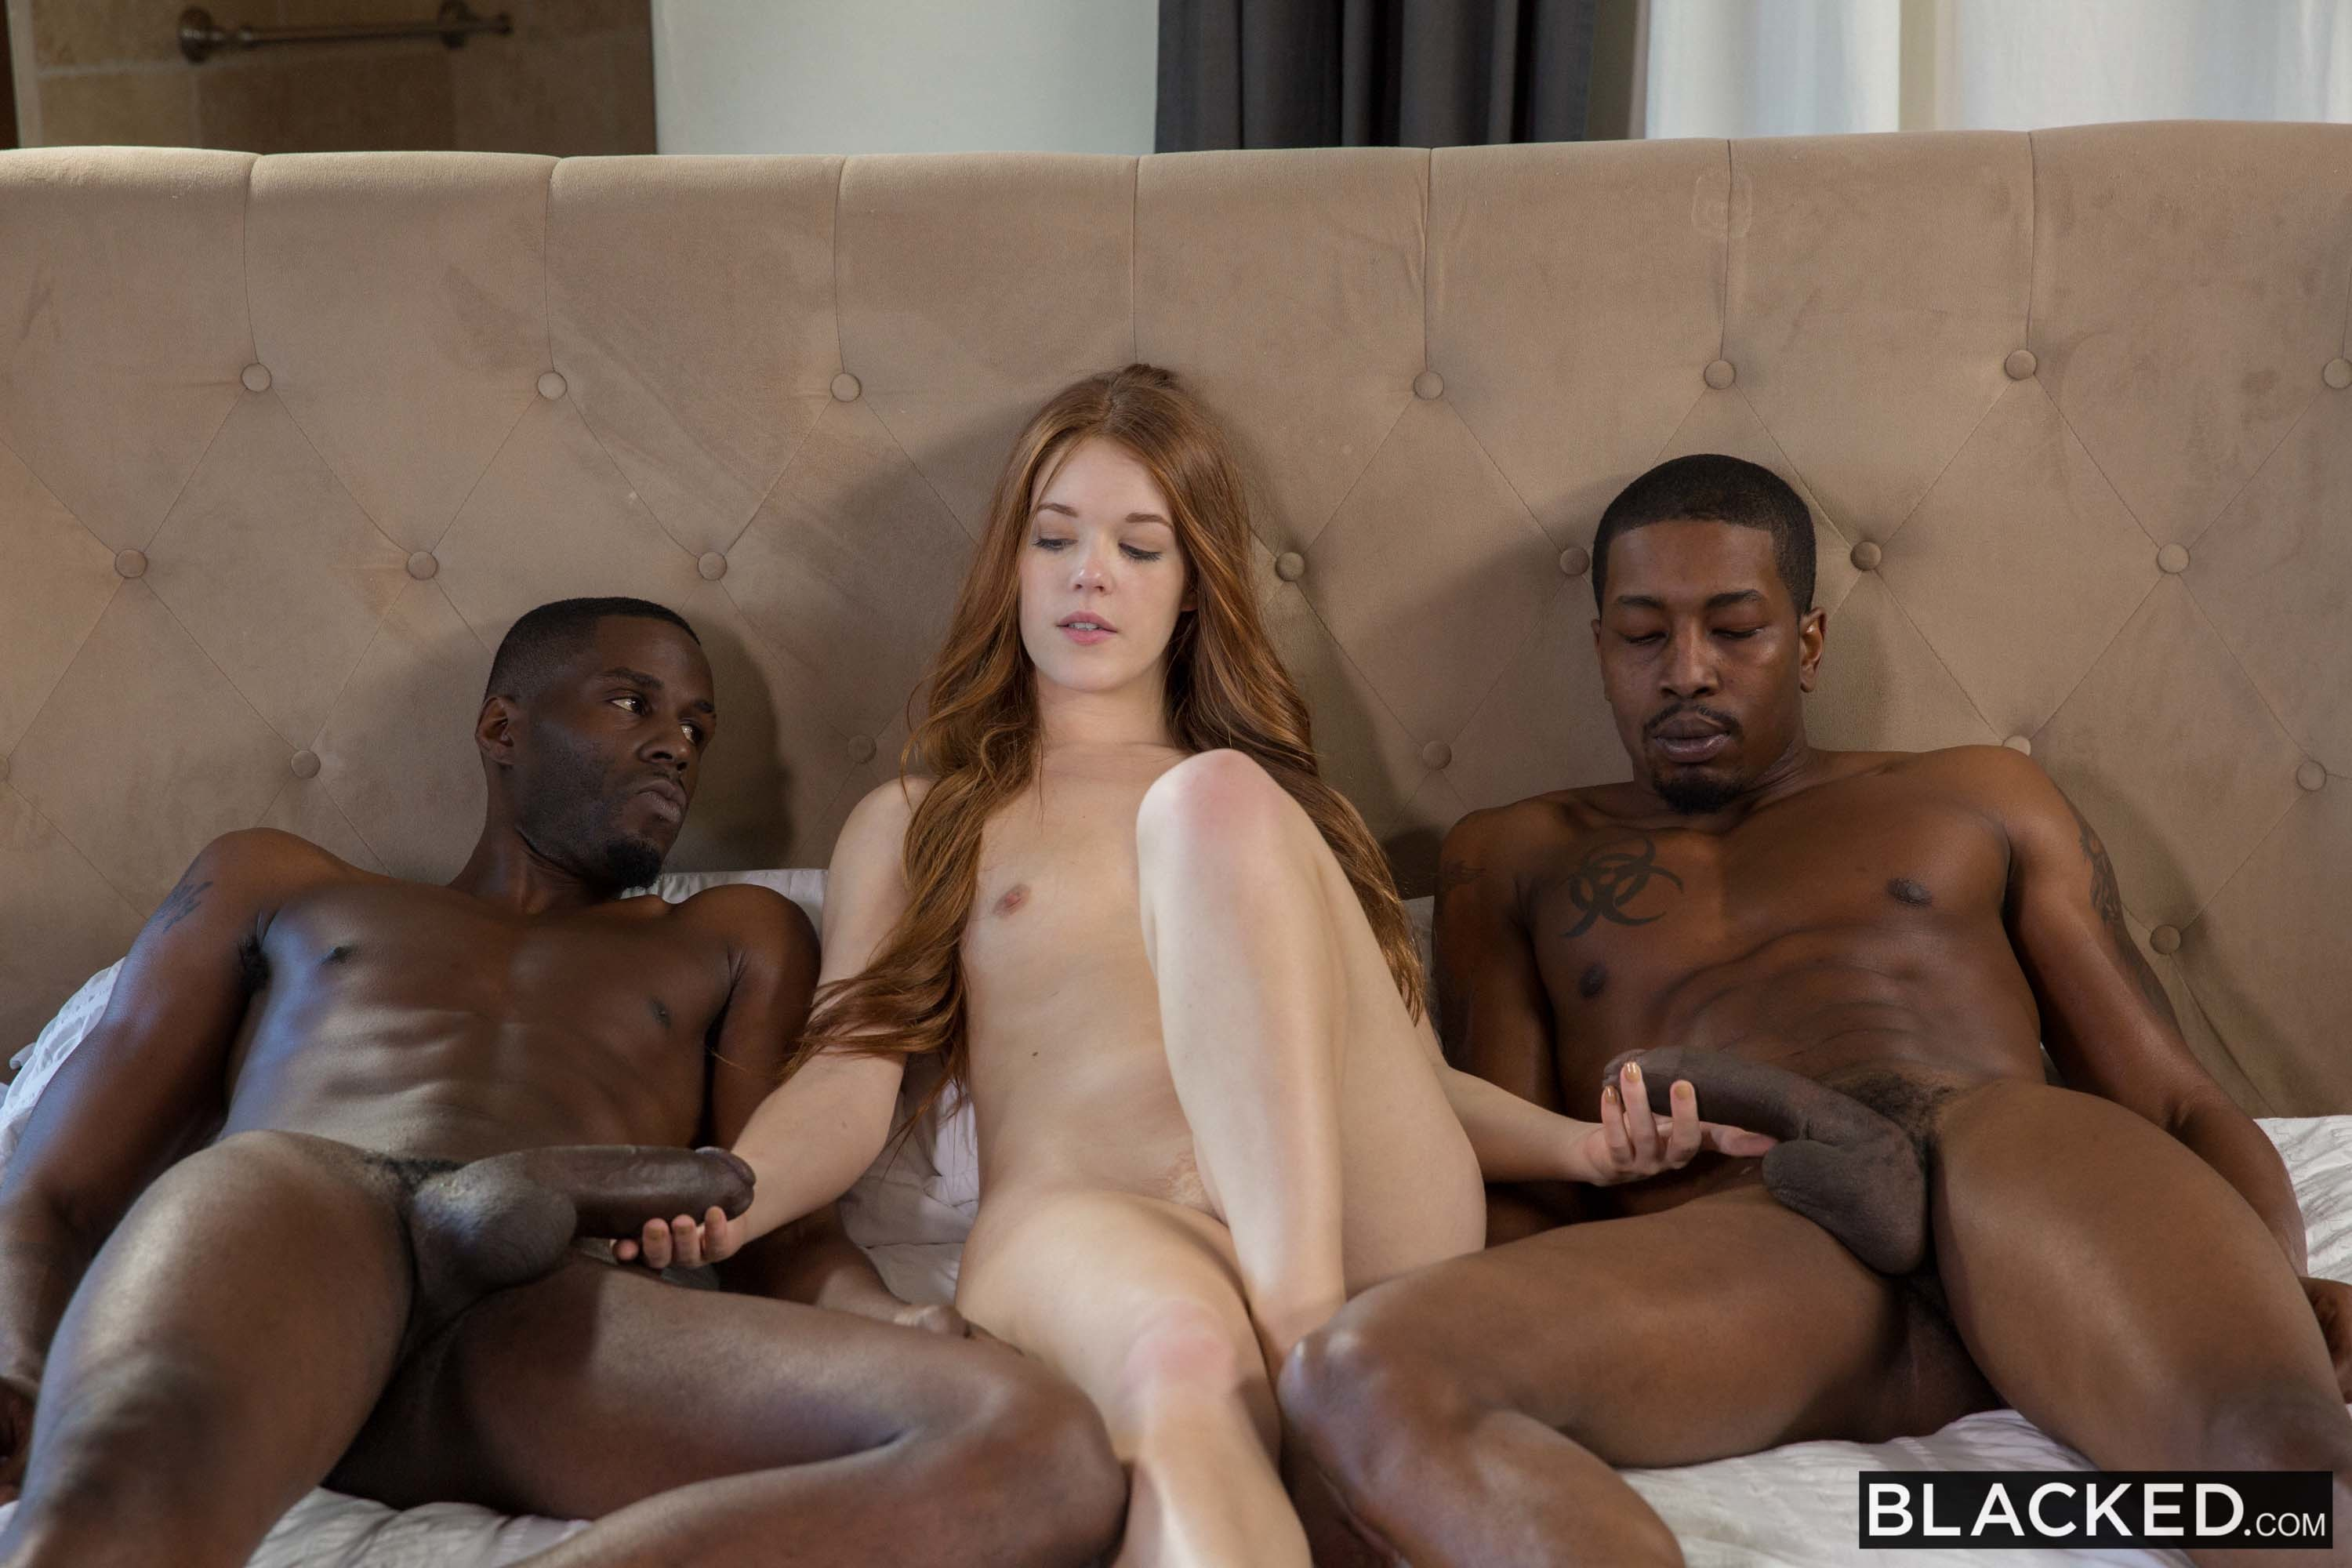 stella cox free sexy galleries nude babe pics at silken Threesome Sex Wow Threesome Pussy Hardcore Bigcocks Erotic Adult Sexual Sex Nsfw